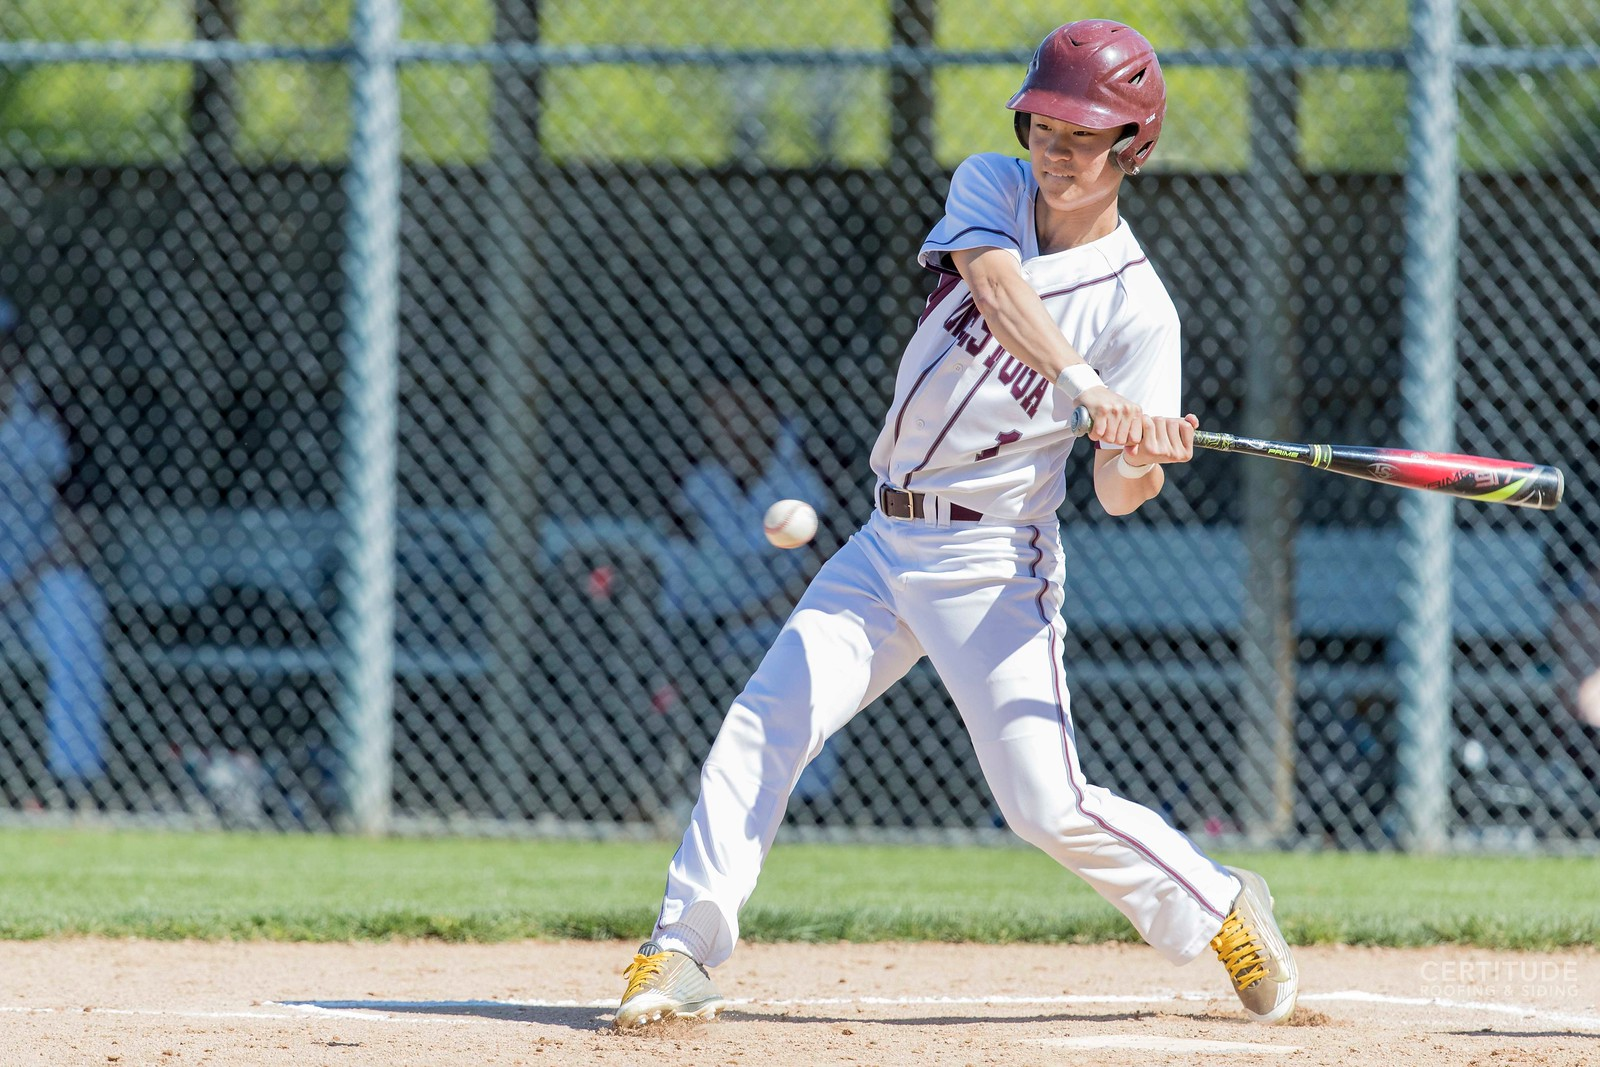 Lower_Merion_BASEBALL_vs_Conestoga-96